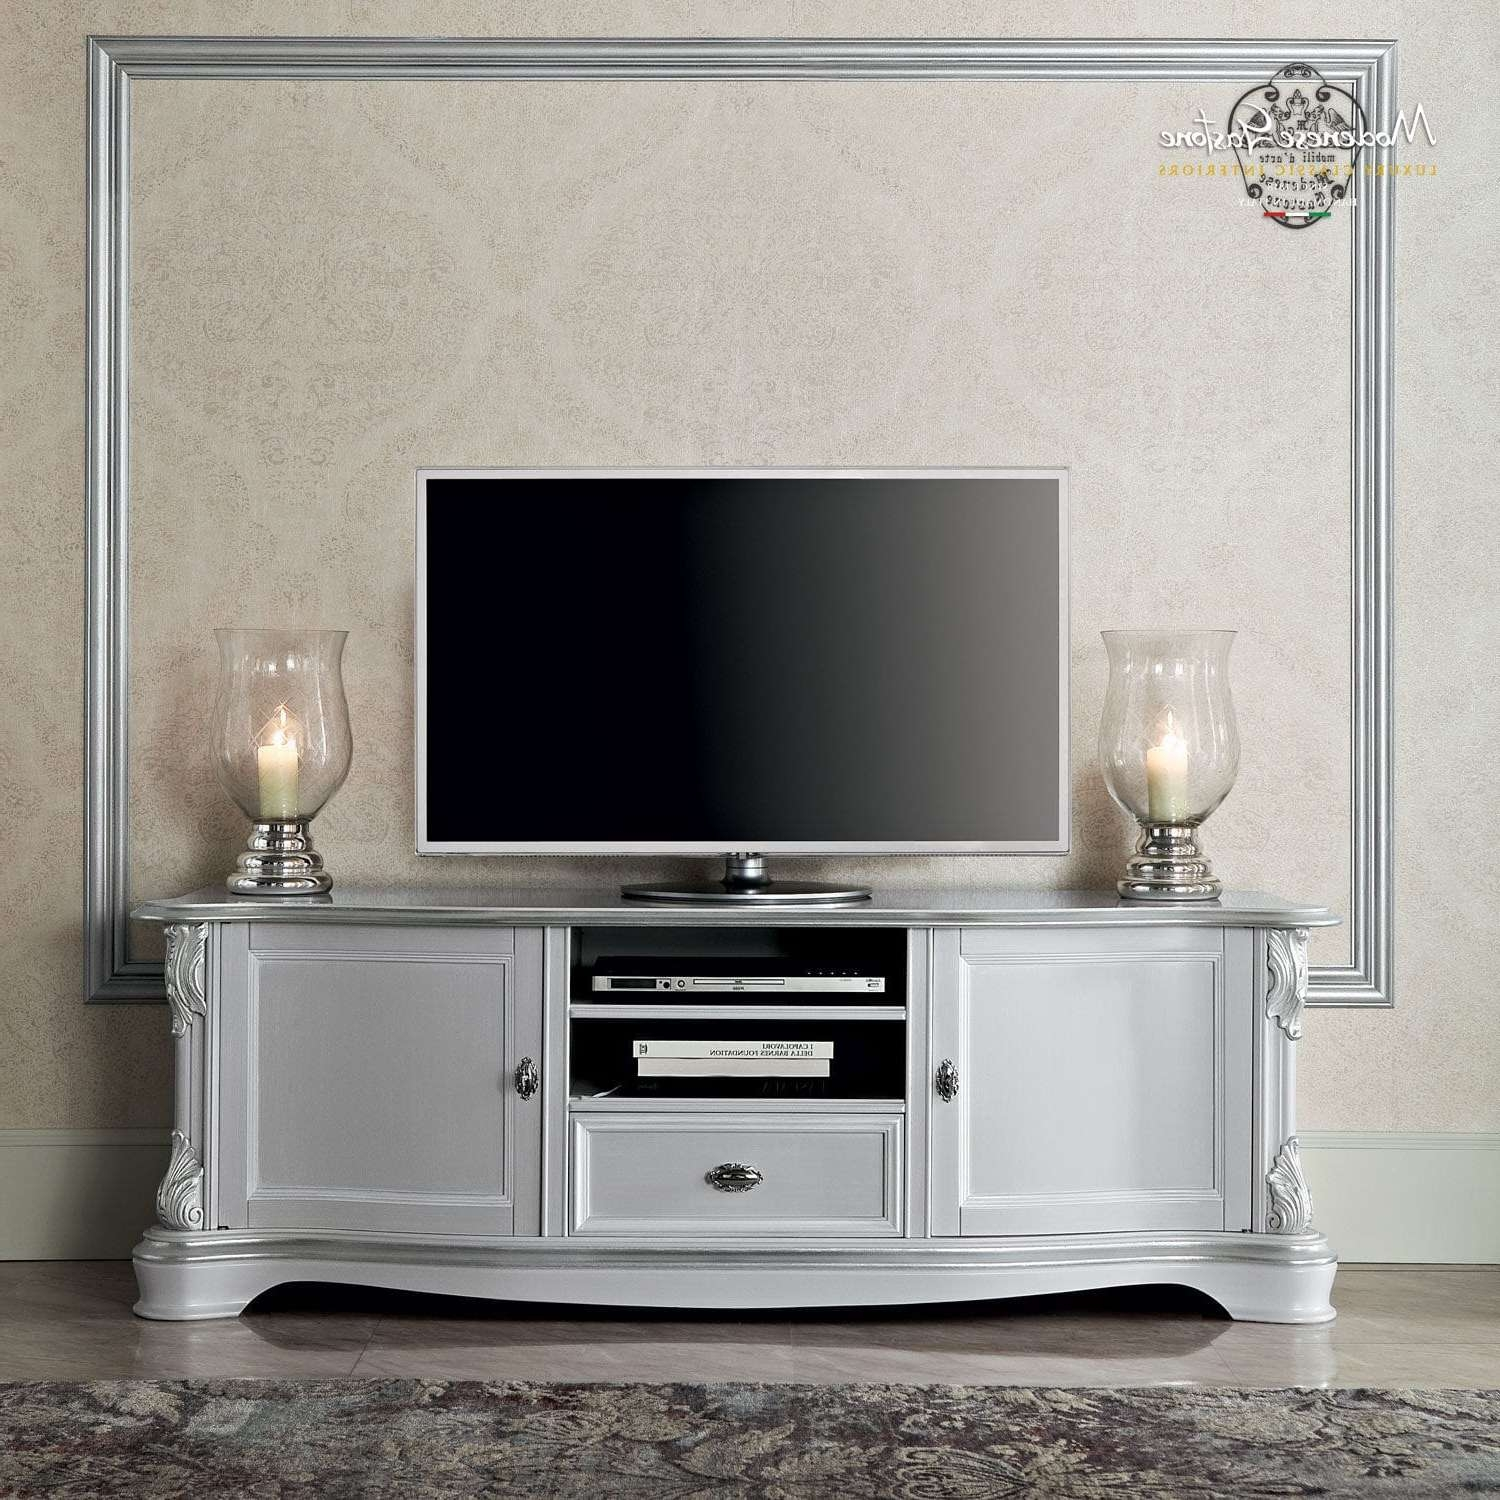 Classic Tv Cabinet / Solid Wood – Bella Vita – Modenese Gastone Inside Classic Tv Stands (View 4 of 20)